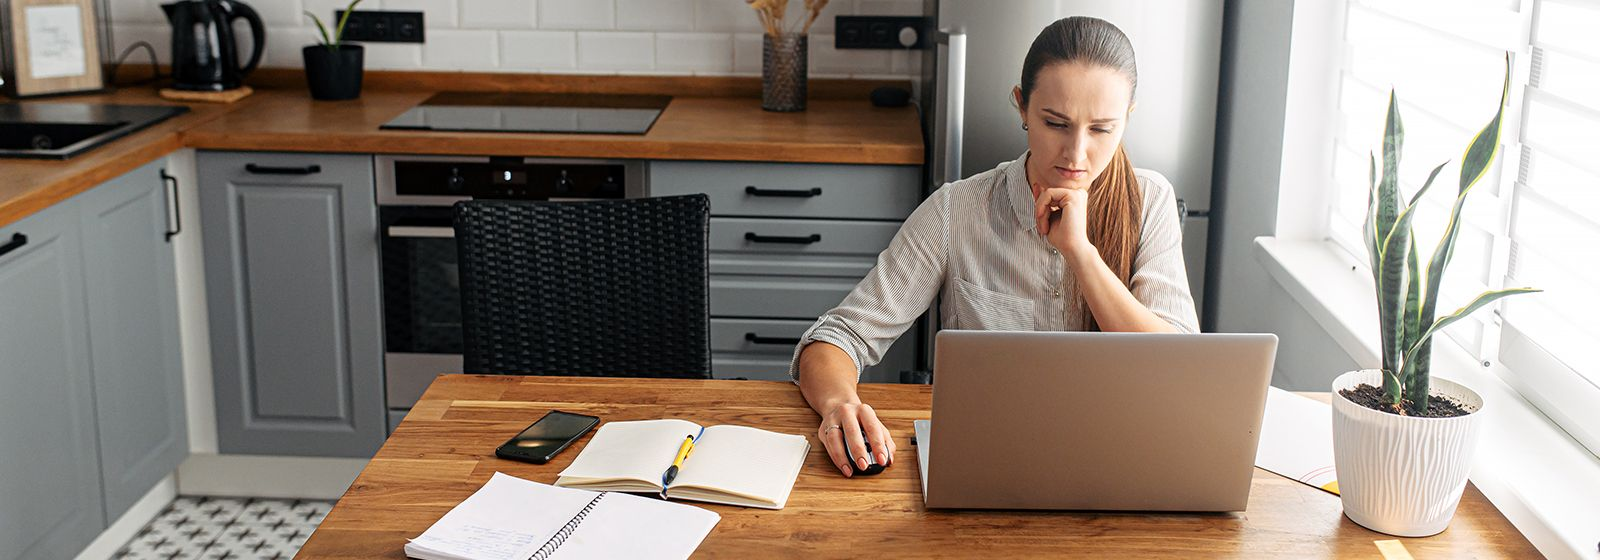 10 easy ways to save energy while working from home